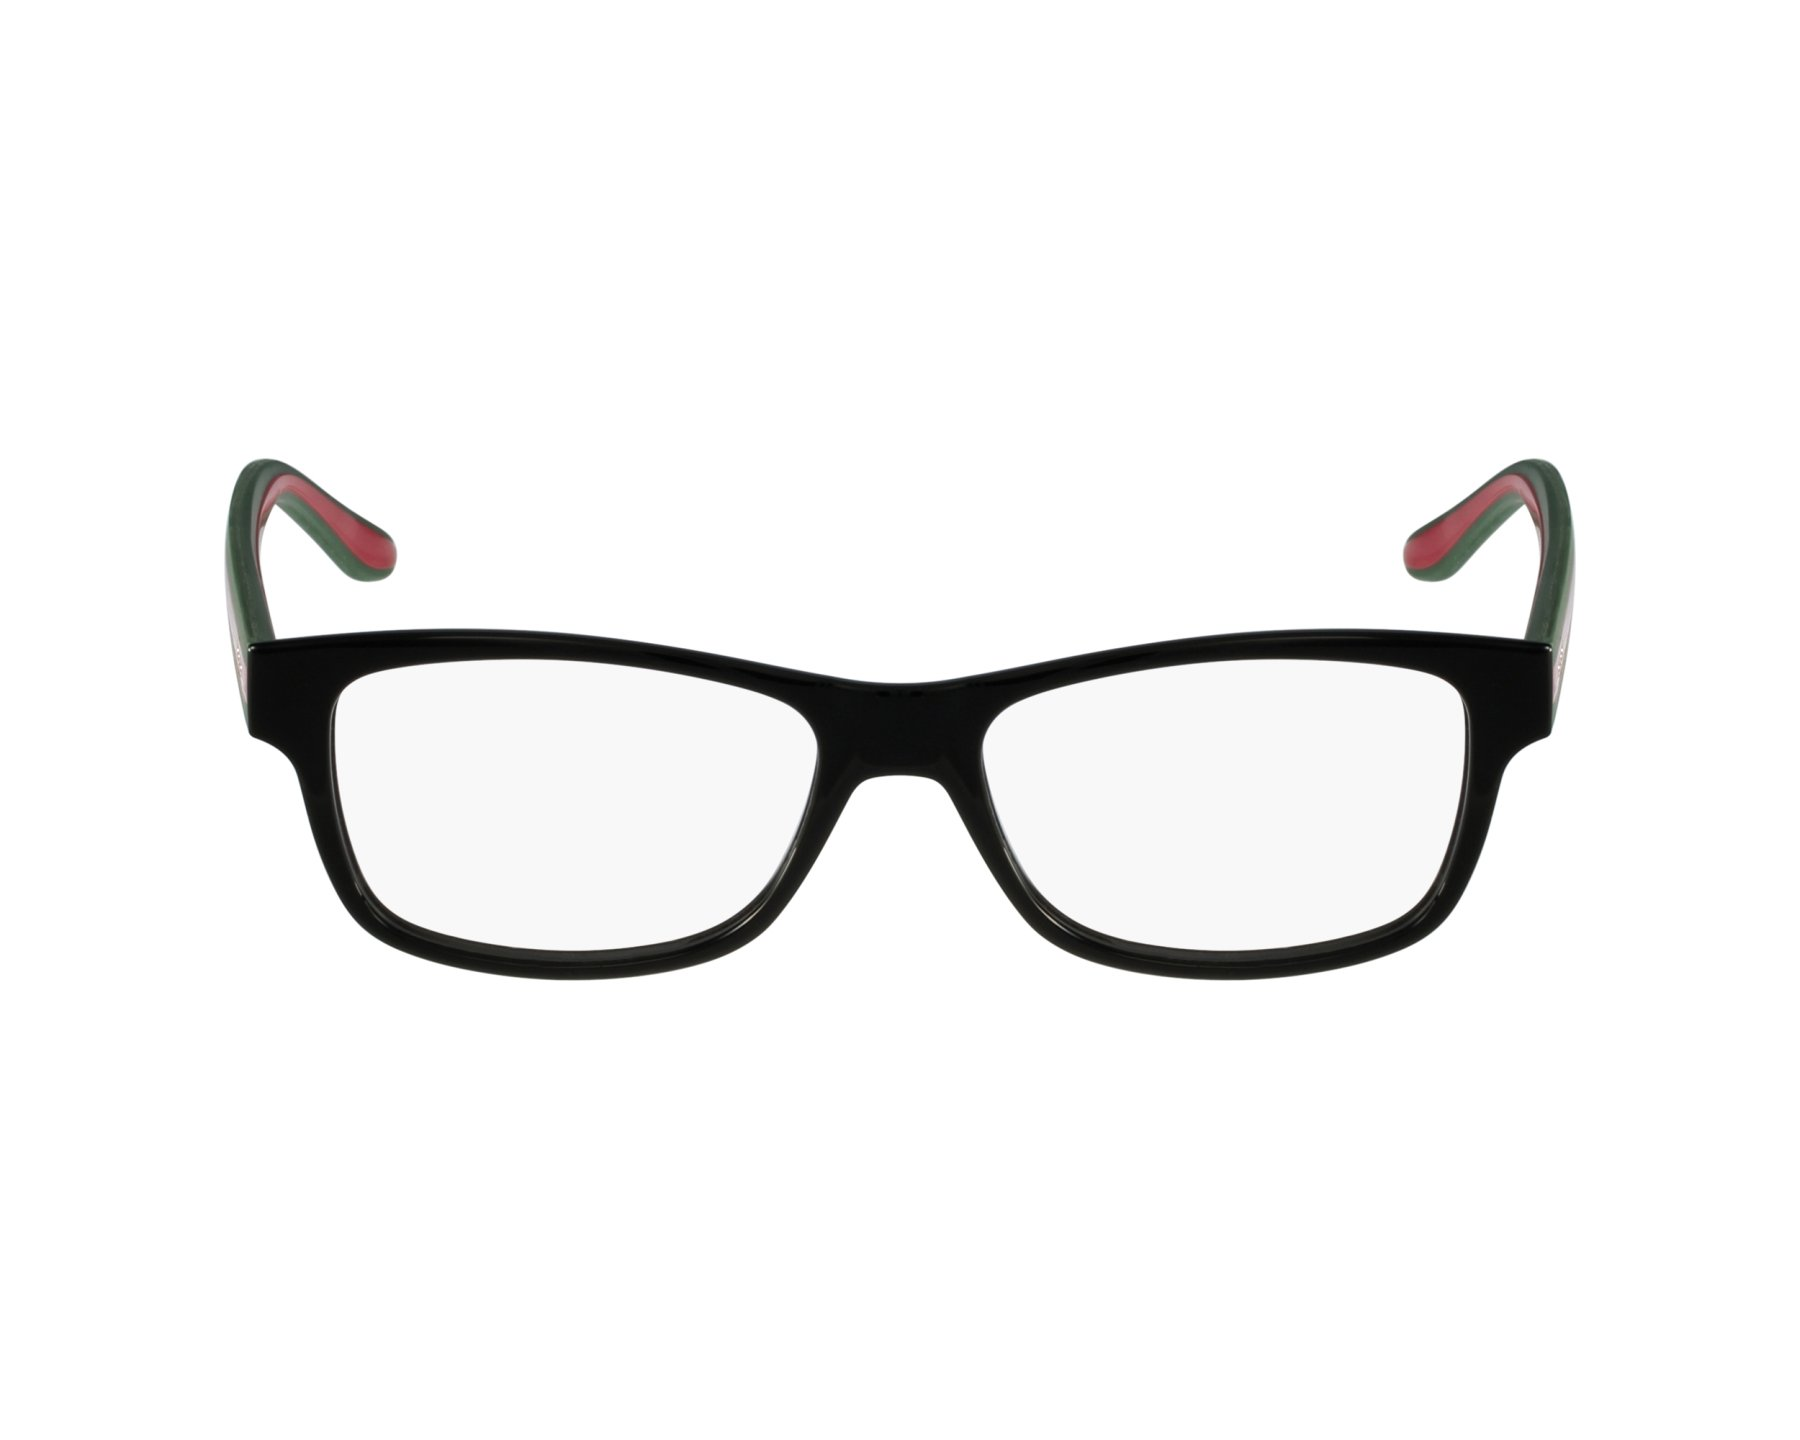 ca1edd301b7 eyeglasses Gucci GG-1046 51N - Black Green profile view